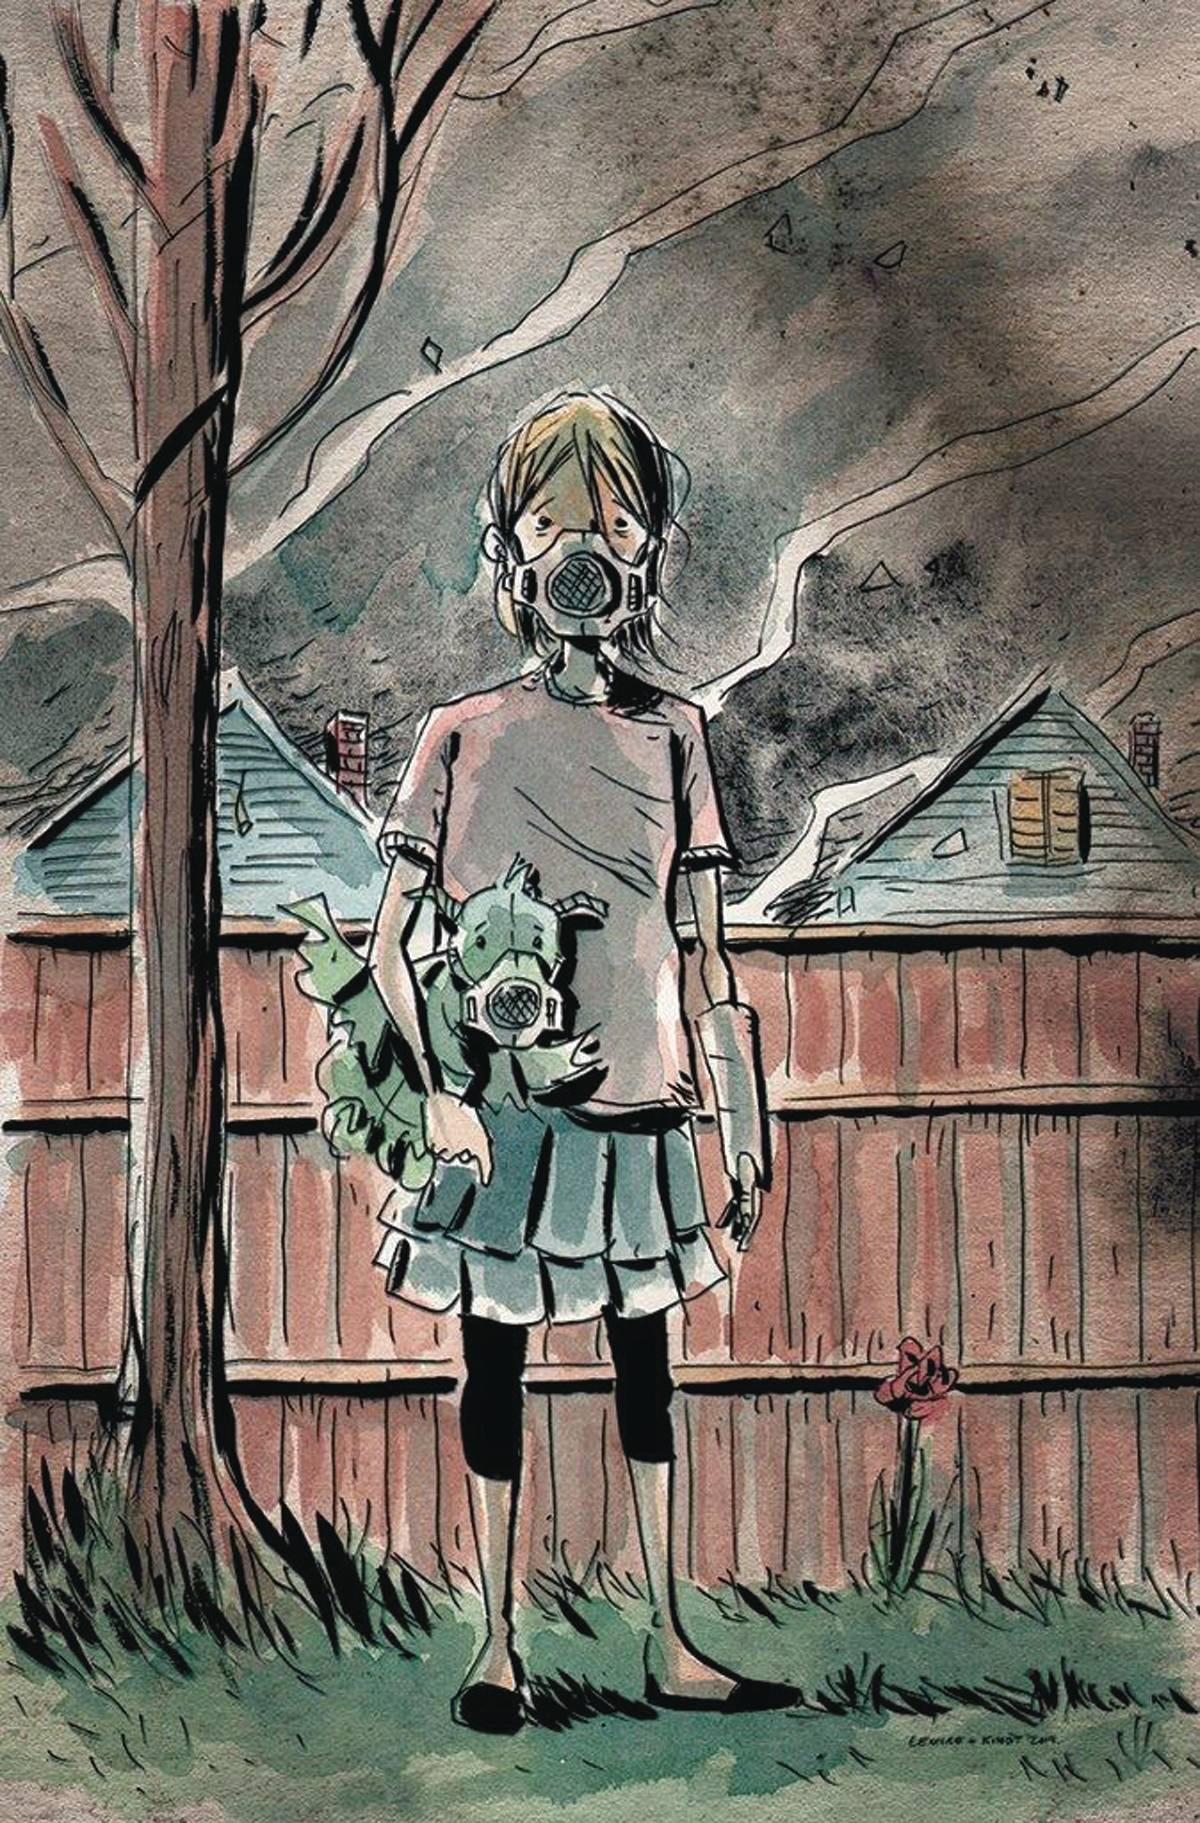 Cover to Breathers #1 by Jeff Lemire and Matt Kindt